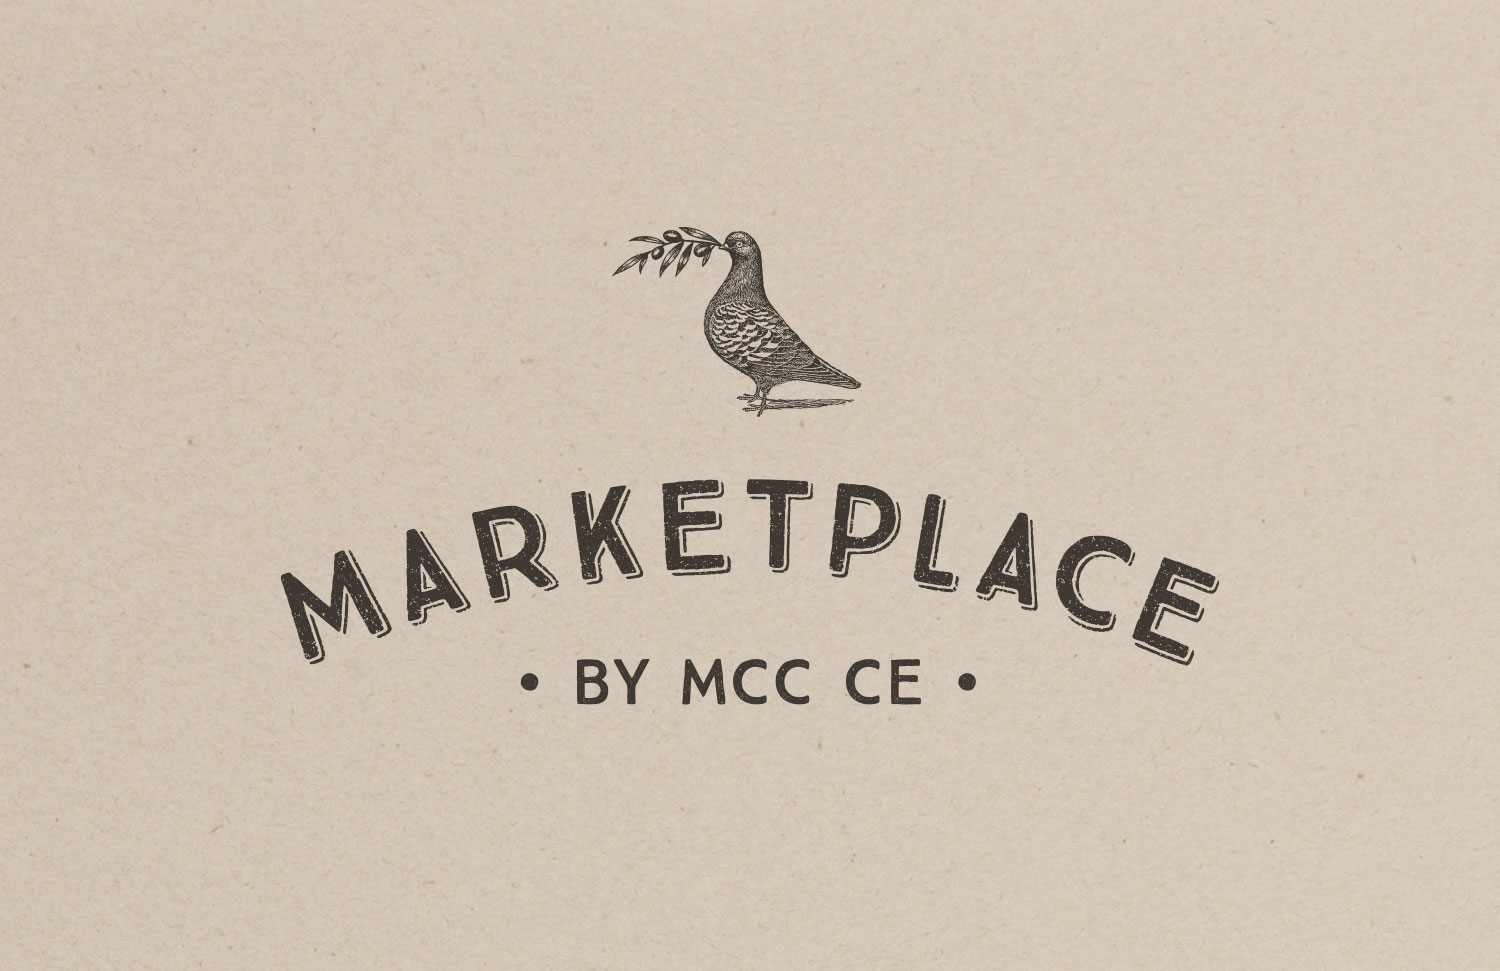 Marketplace-by-MCC-CE_logo_black.jpg